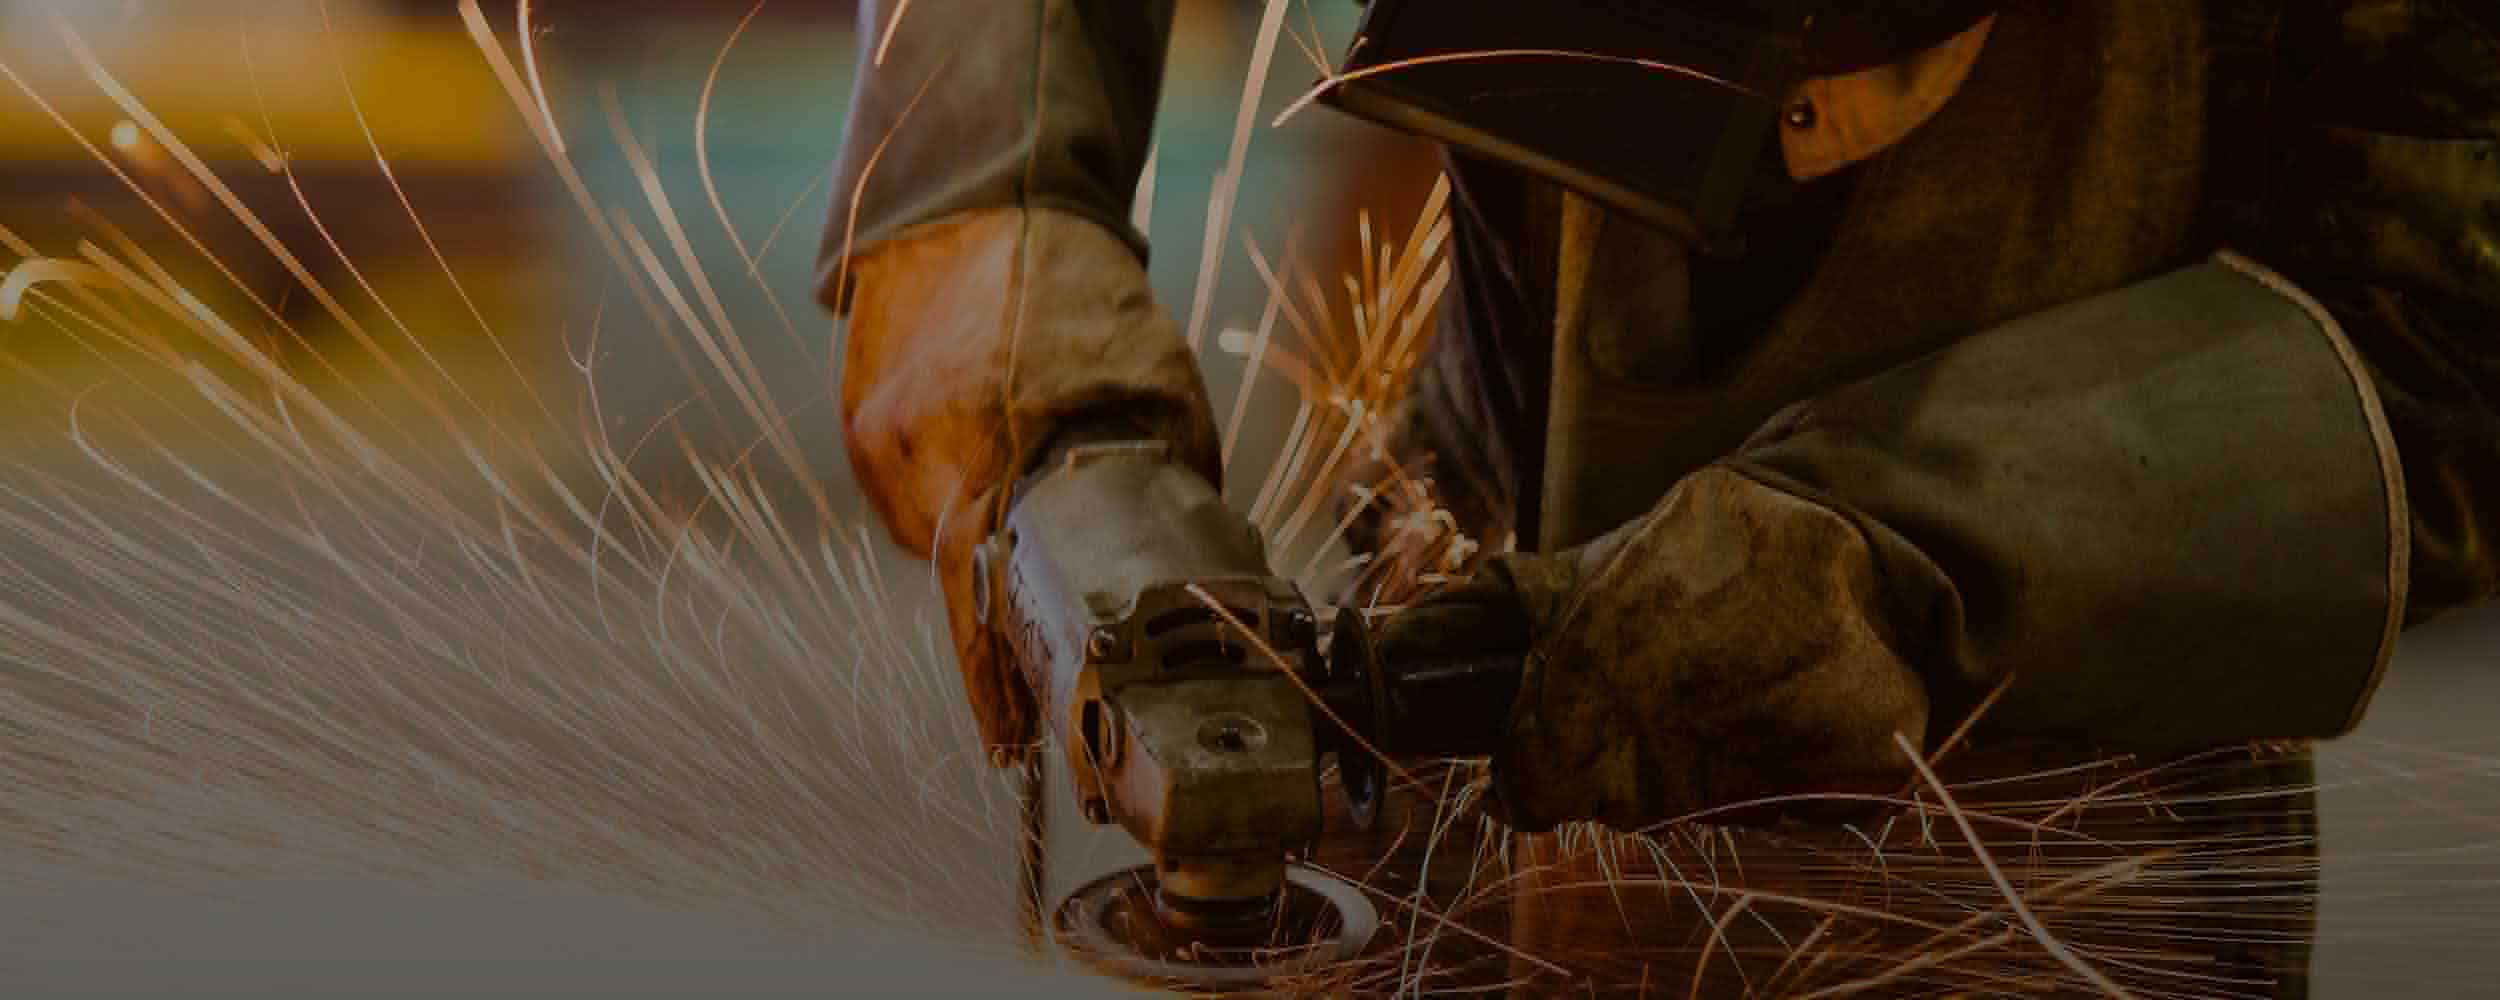 Expert in boilermaking, sheet metal, mechanized welding and laser cutting